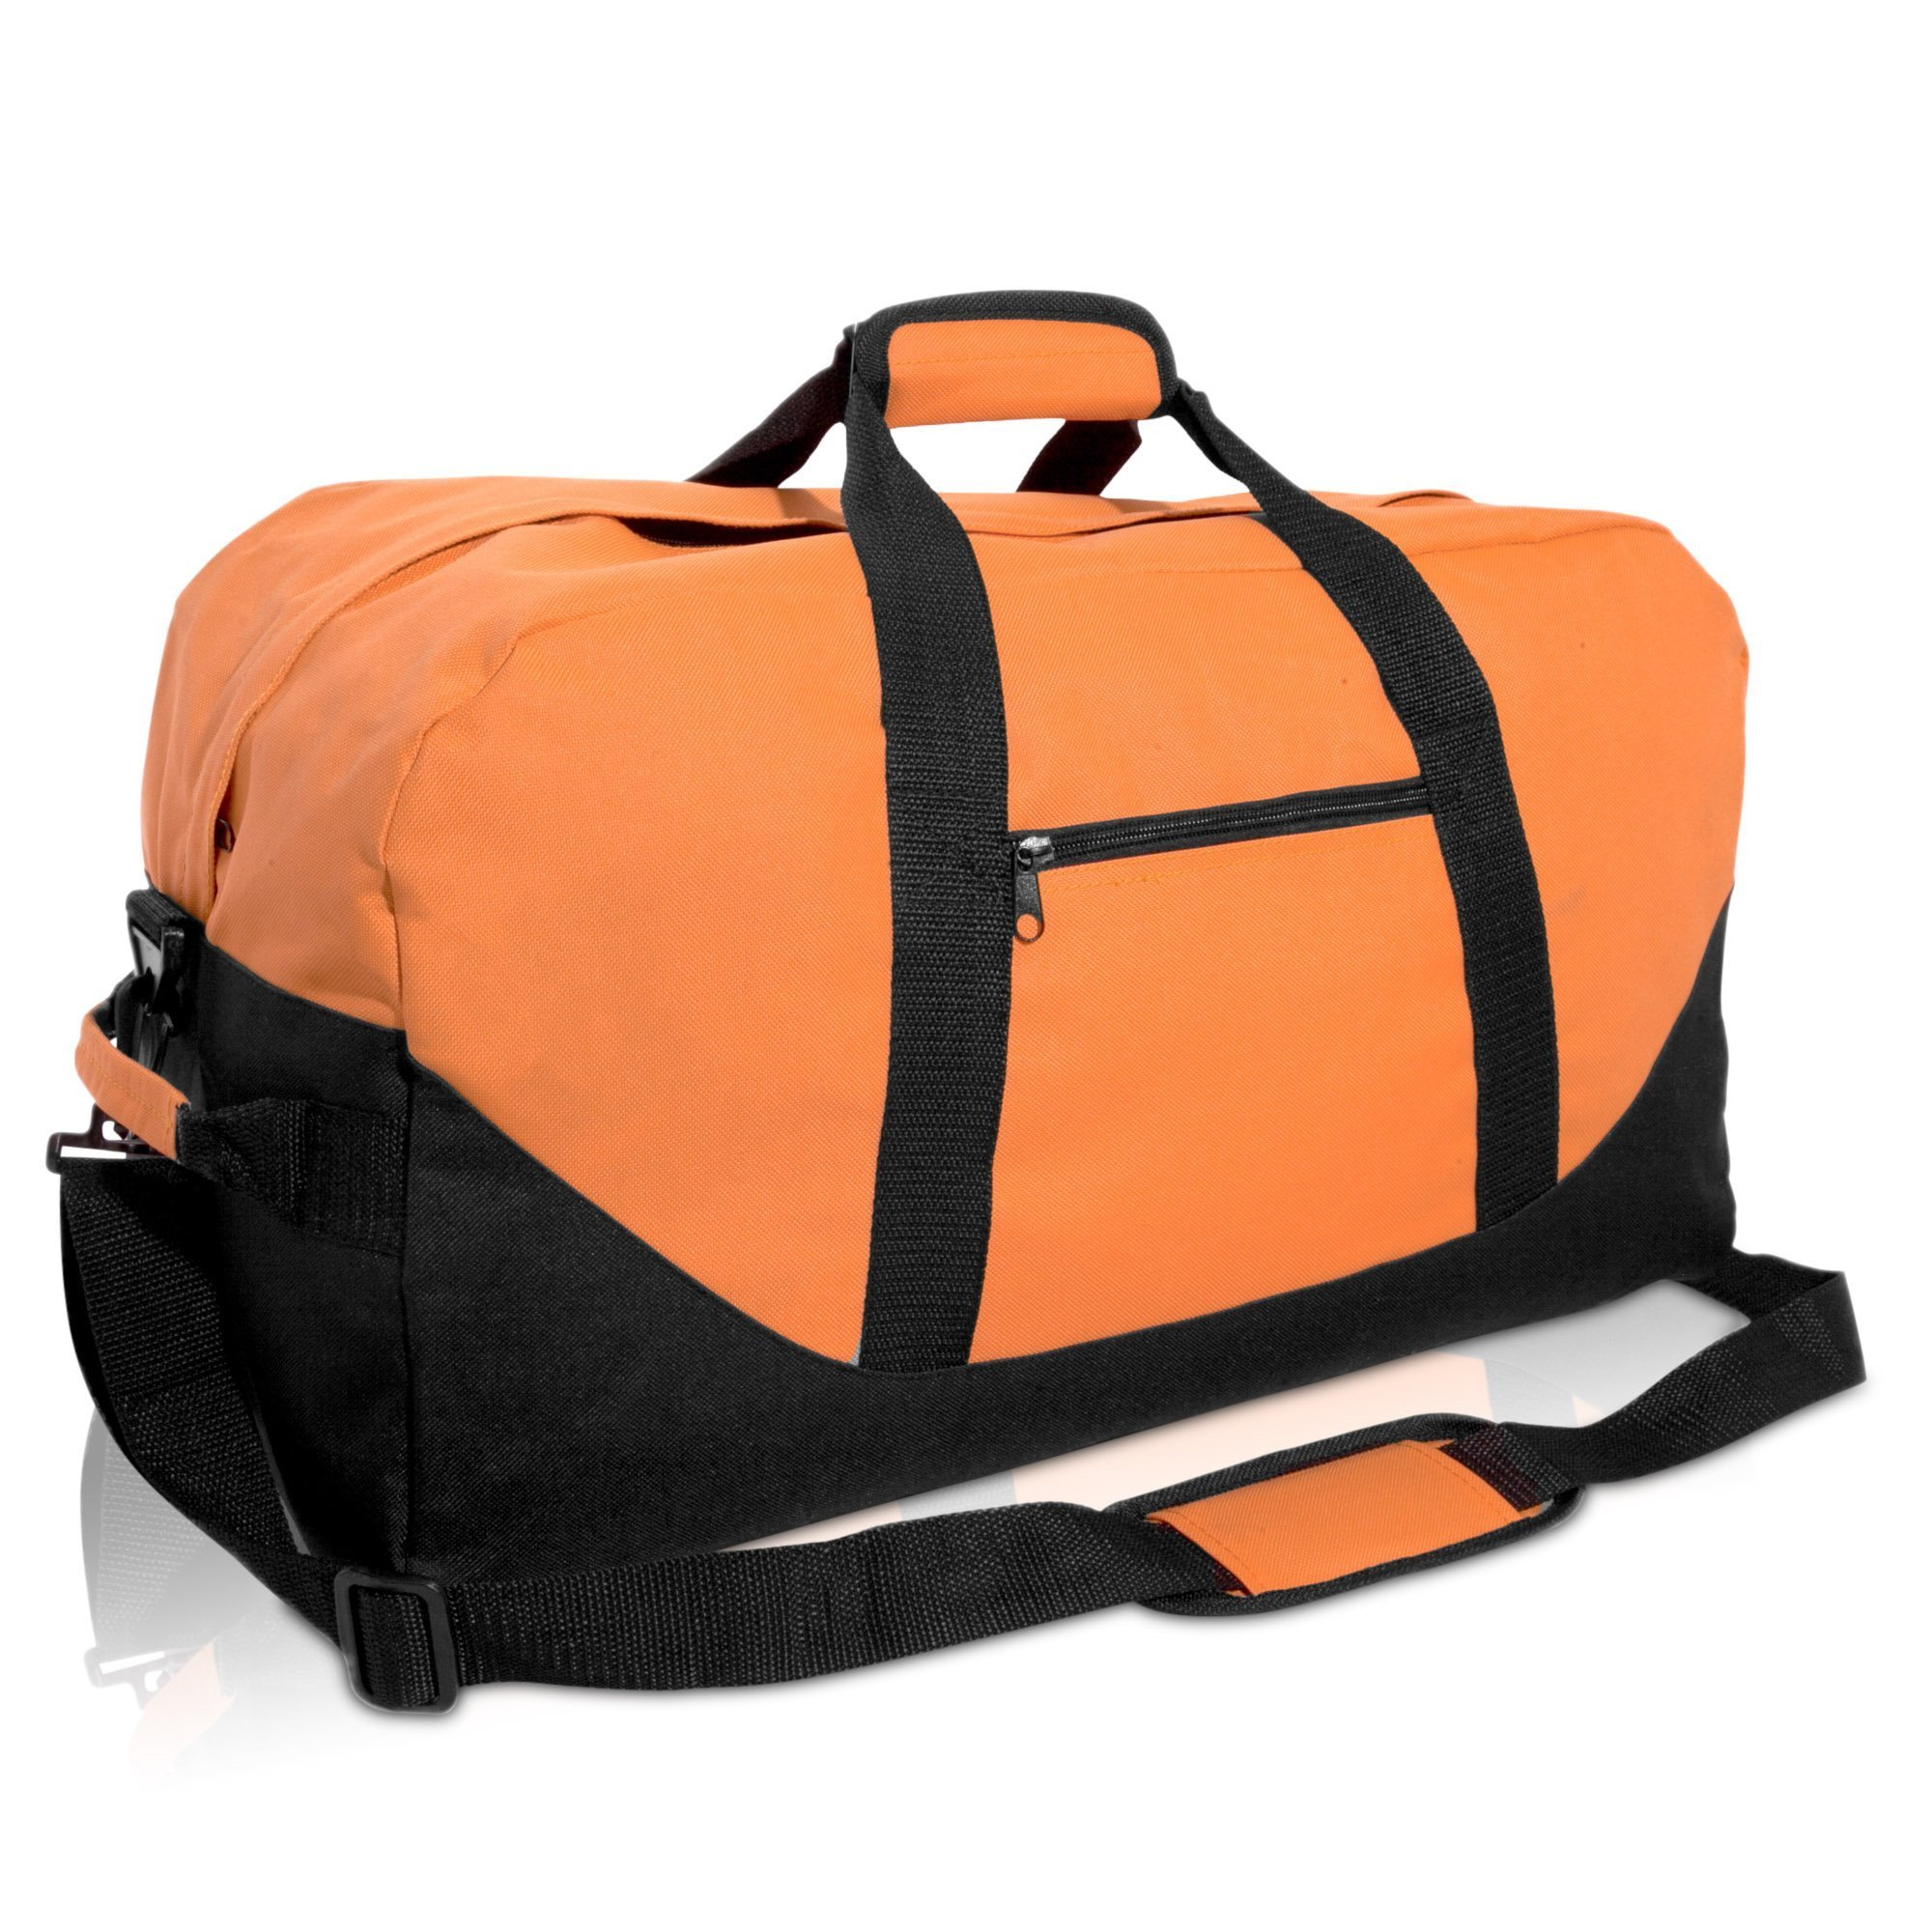 21'' Large Duffle Bag with Adjustable Strap (Orange) by DALIX